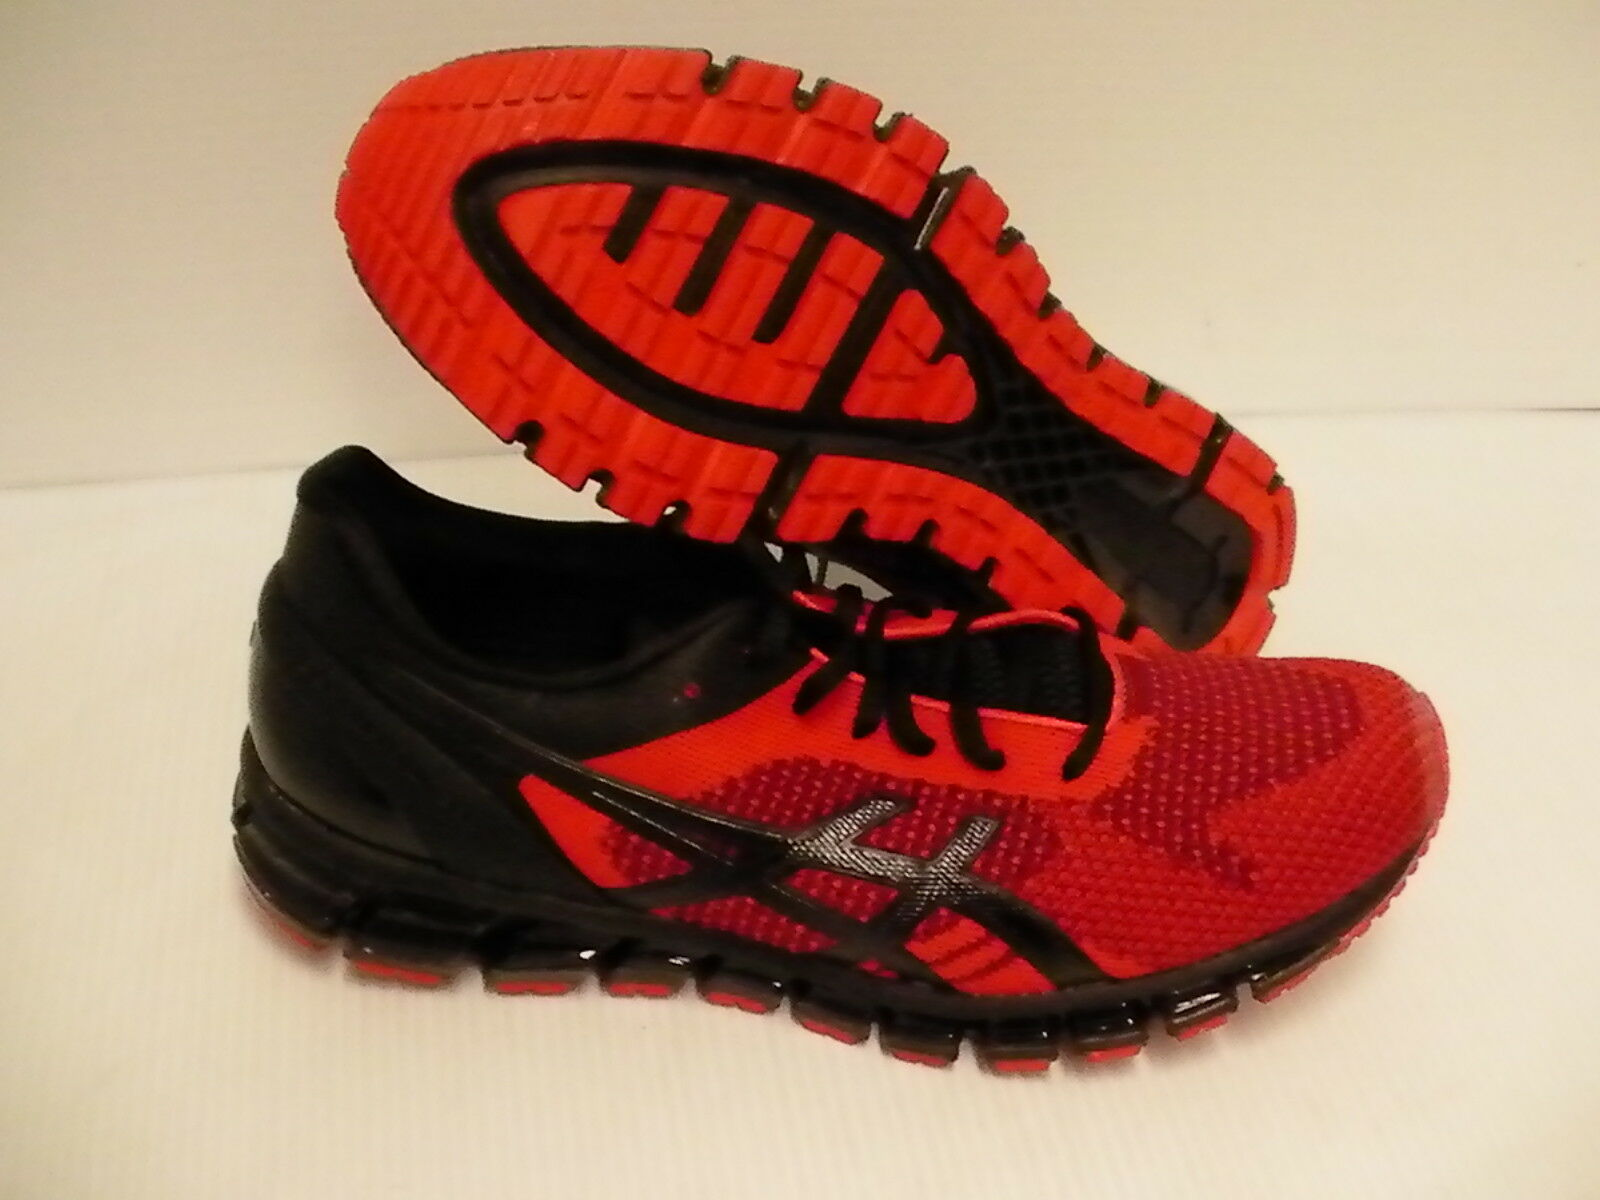 Asics men's running shoes gel quantum 360 knit ot red black onyx size 11.5 us